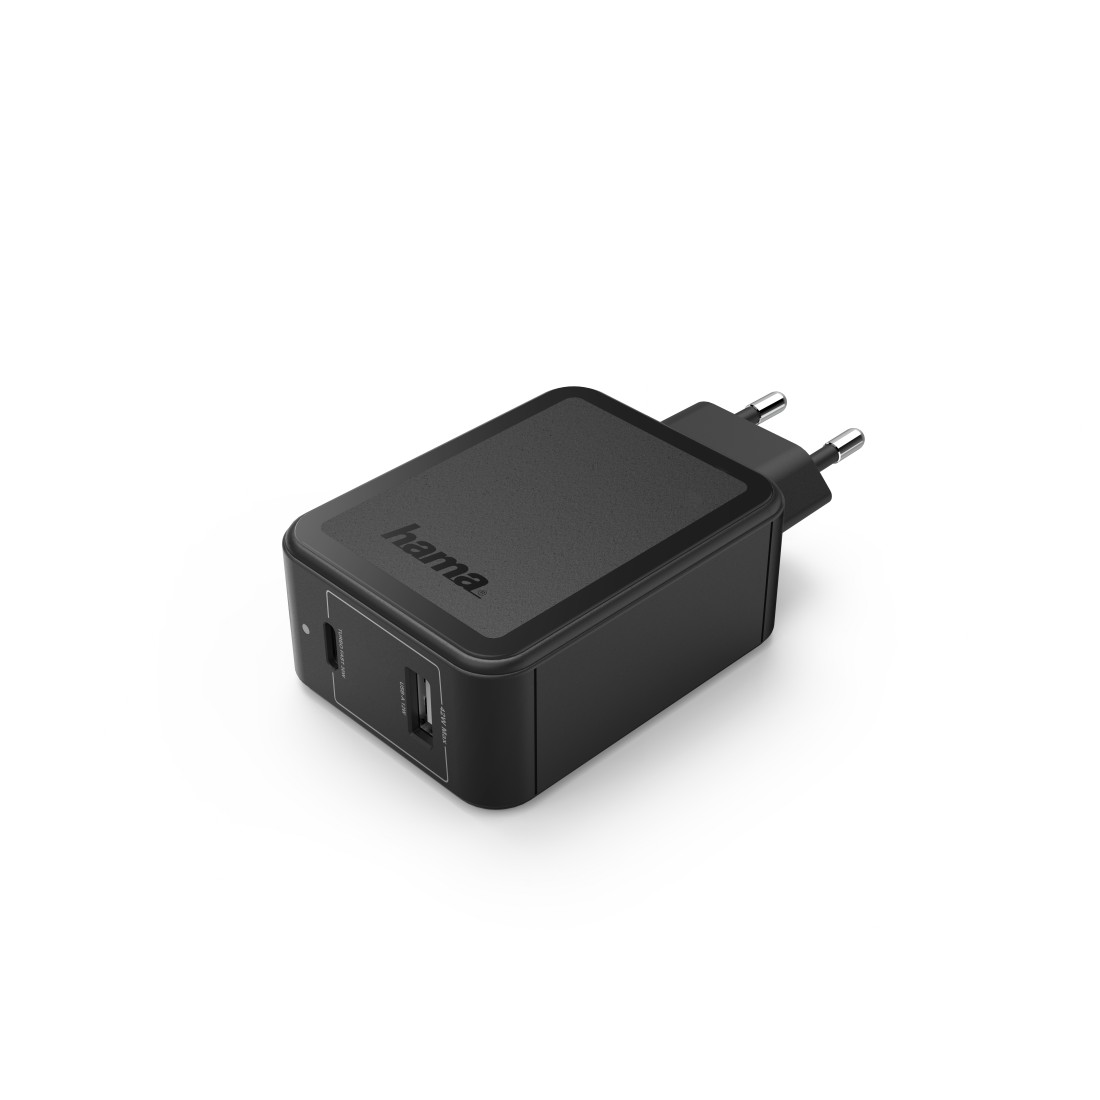 abx2 High-Res Image 2 - Hama, Charger, USB-C, Power Delivery (PD) / Qualcomm® + USB-A, 42 W, black